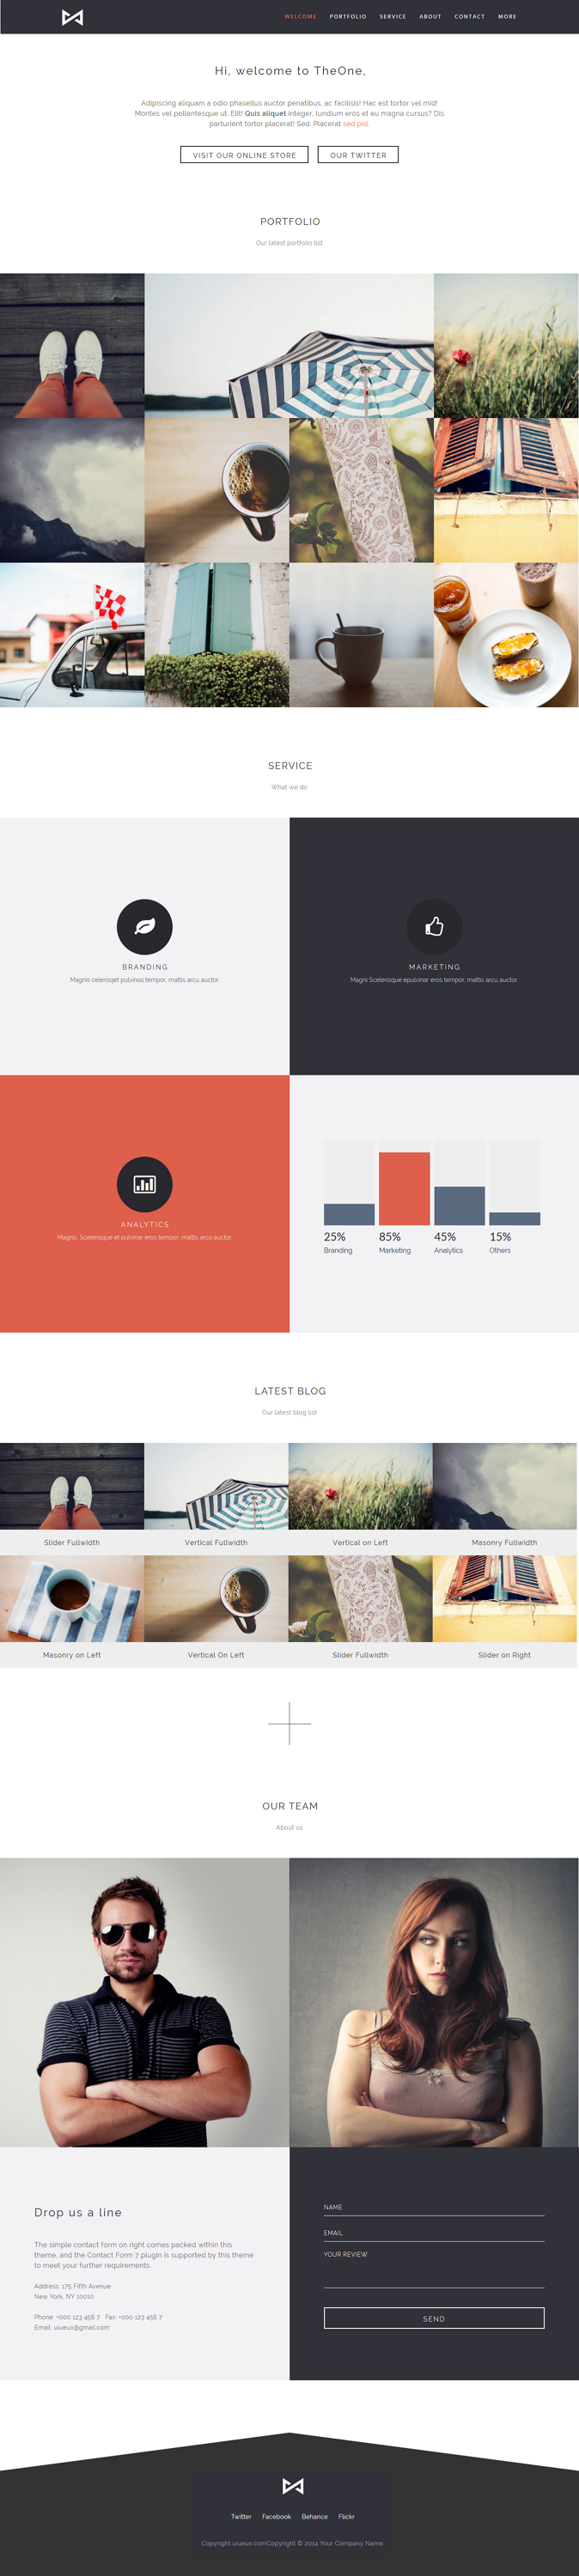 THEONE is a responsive & retina portfolio OnePage HTML theme for the professional creative.